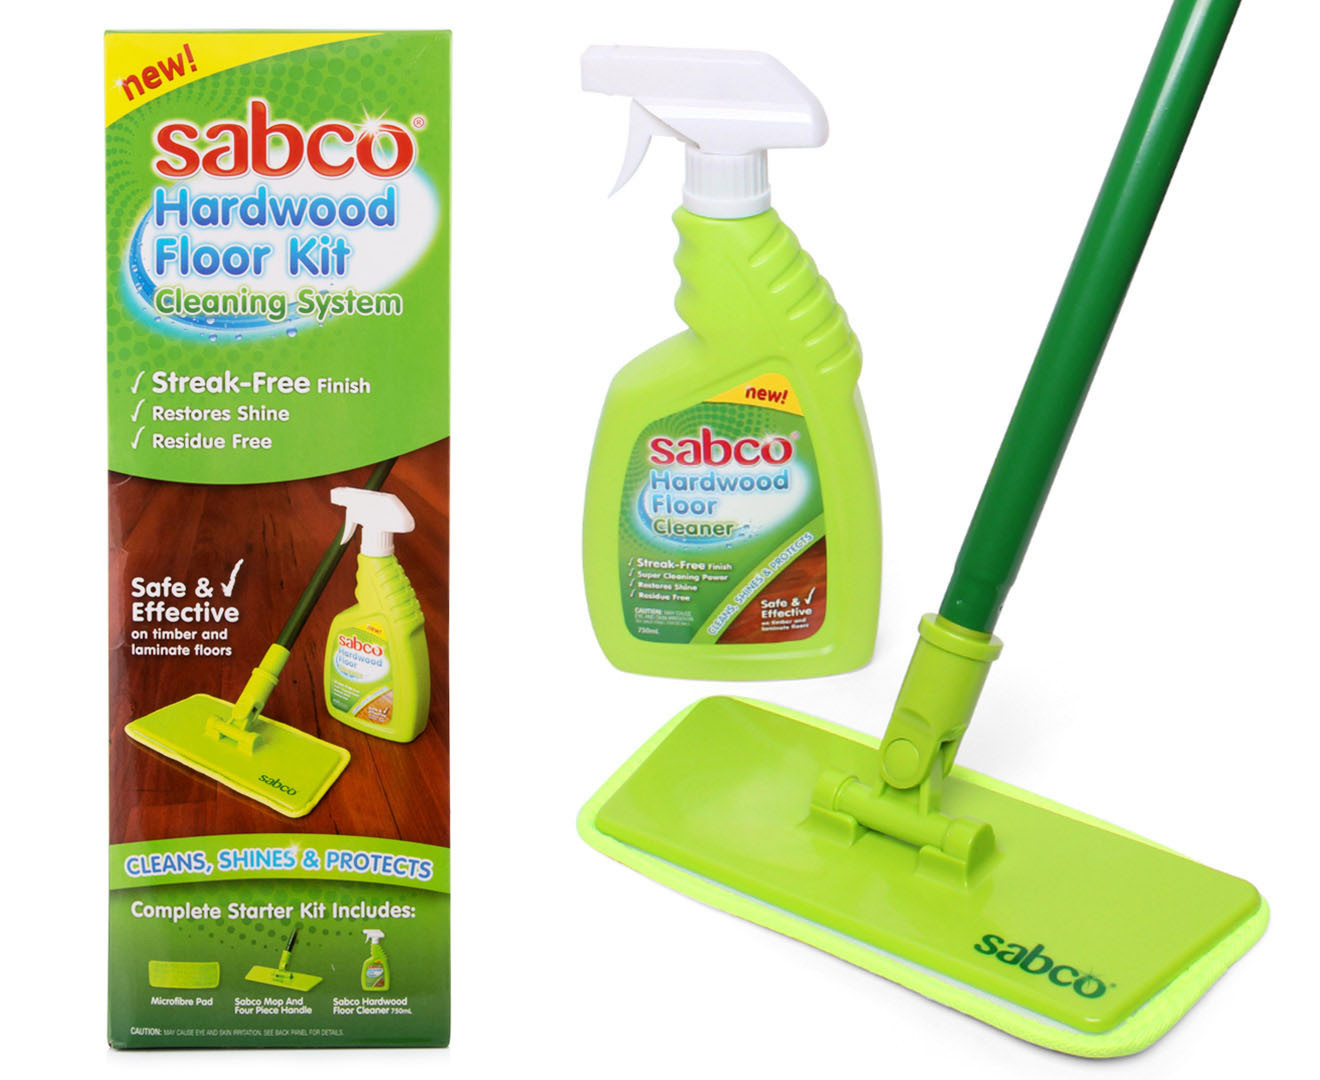 orange glo hardwood floor care kit of best wood floor cleaner no streaks lovely endust citrus wood floor in best wood floor cleaner no streaks best of sabco hardwood floor kit cleaning system of best